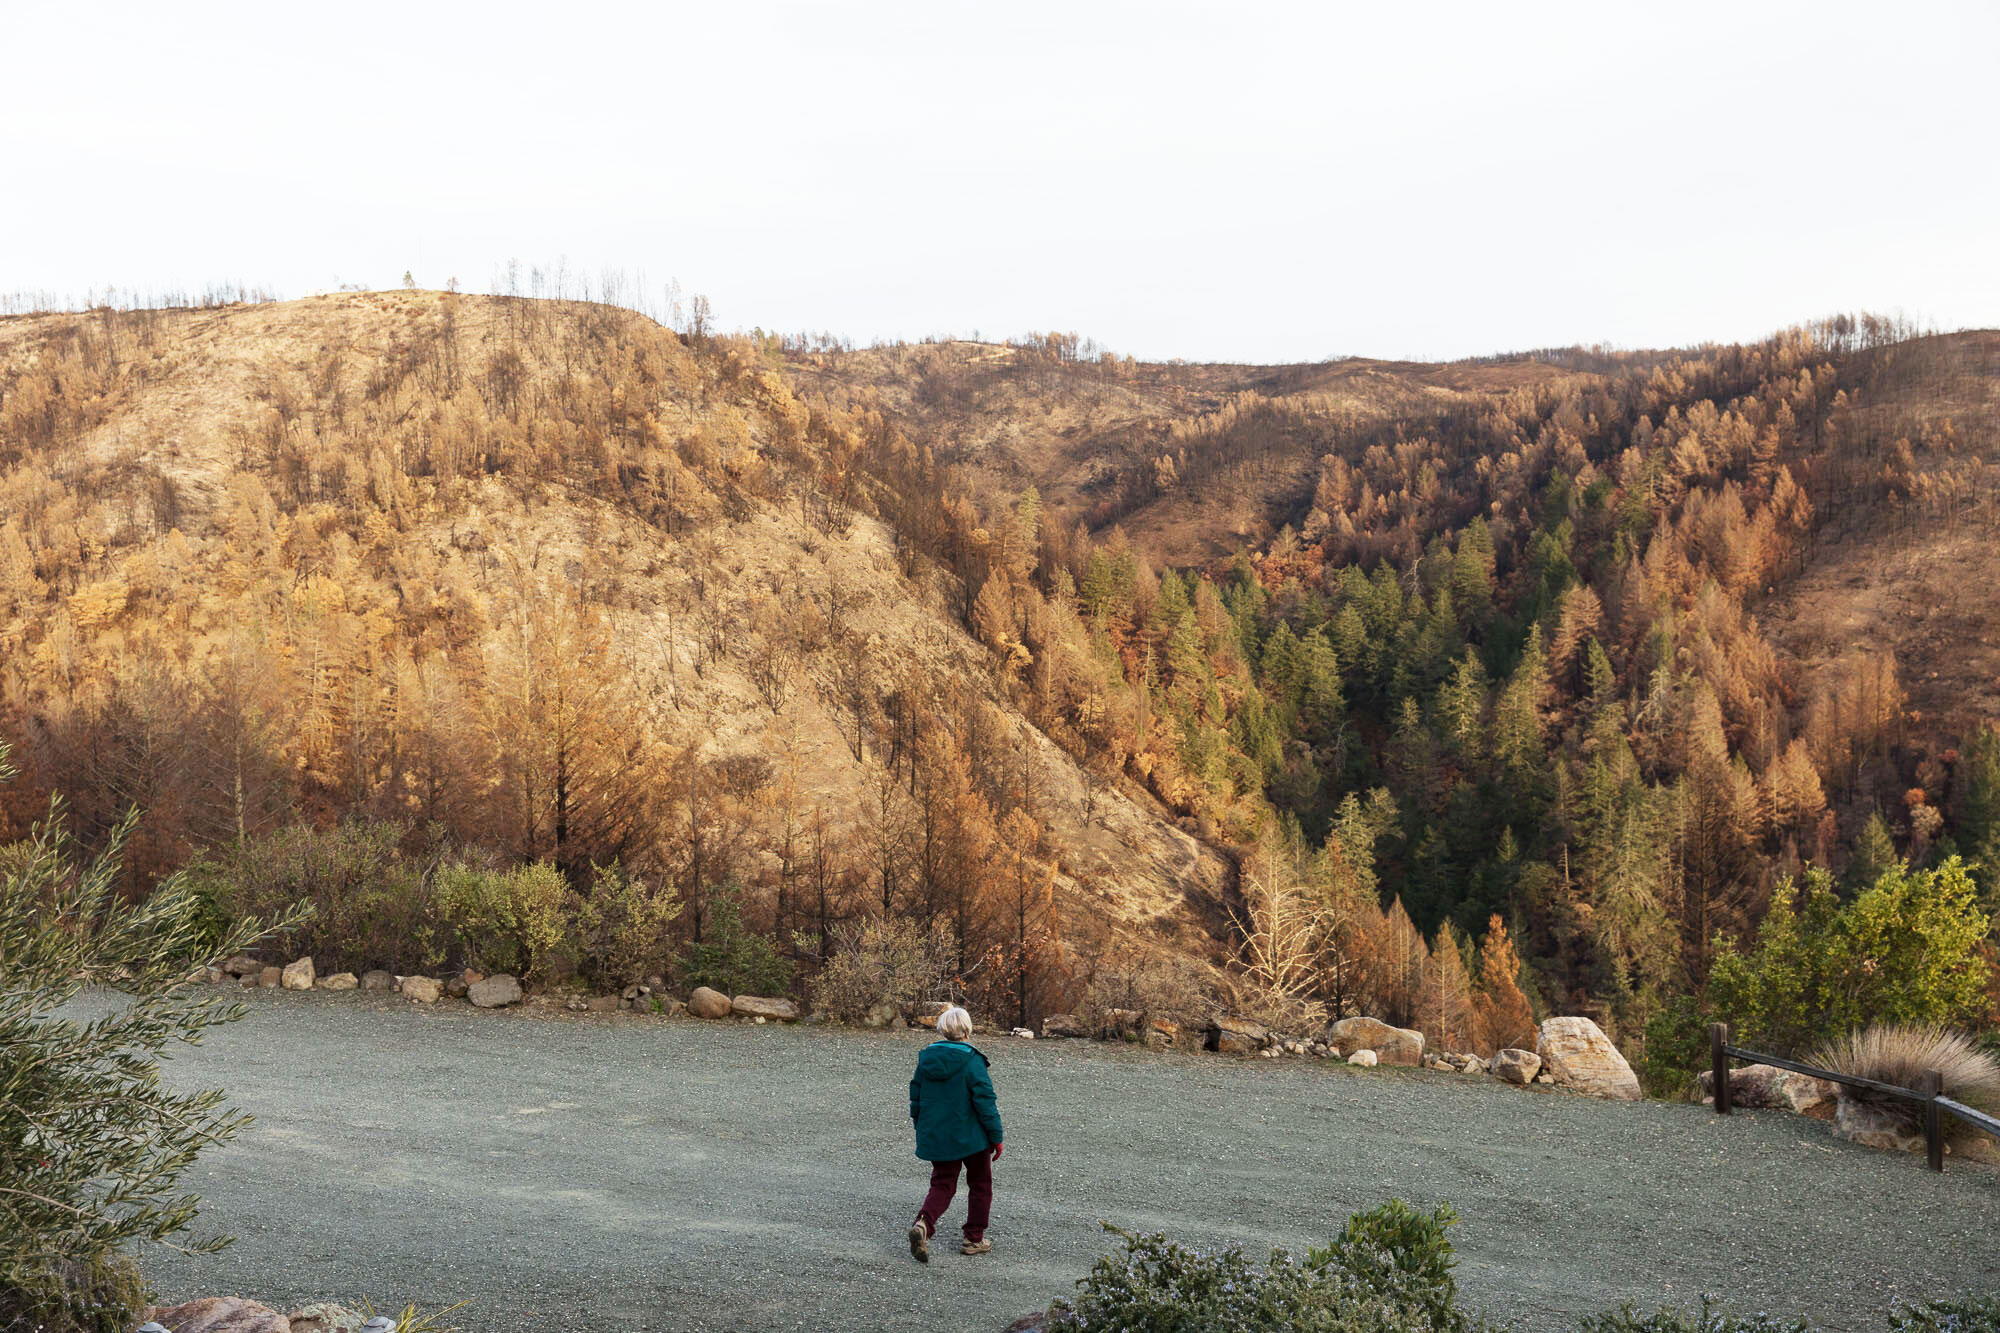 """Christine Engel strides in front of scorched hills. """"I haven't lost my love affair with dynamic California,"""" she says, despite the fall's destructive wildfires. Ryan Young"""